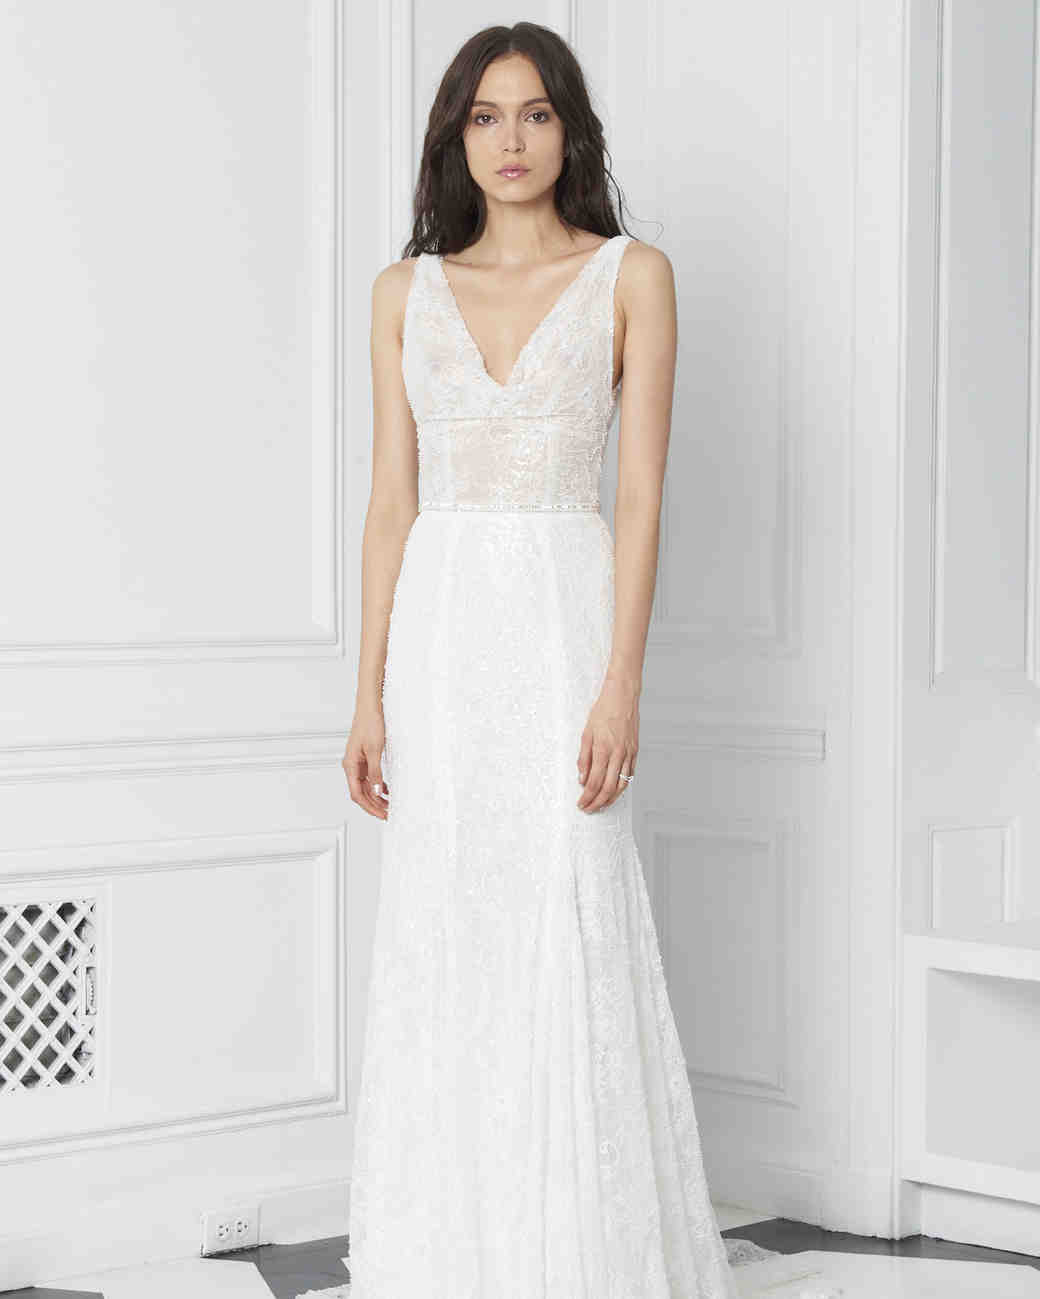 Monique Lhuillier Bliss Fall 2018 Embroidered Lace Wedding Dress